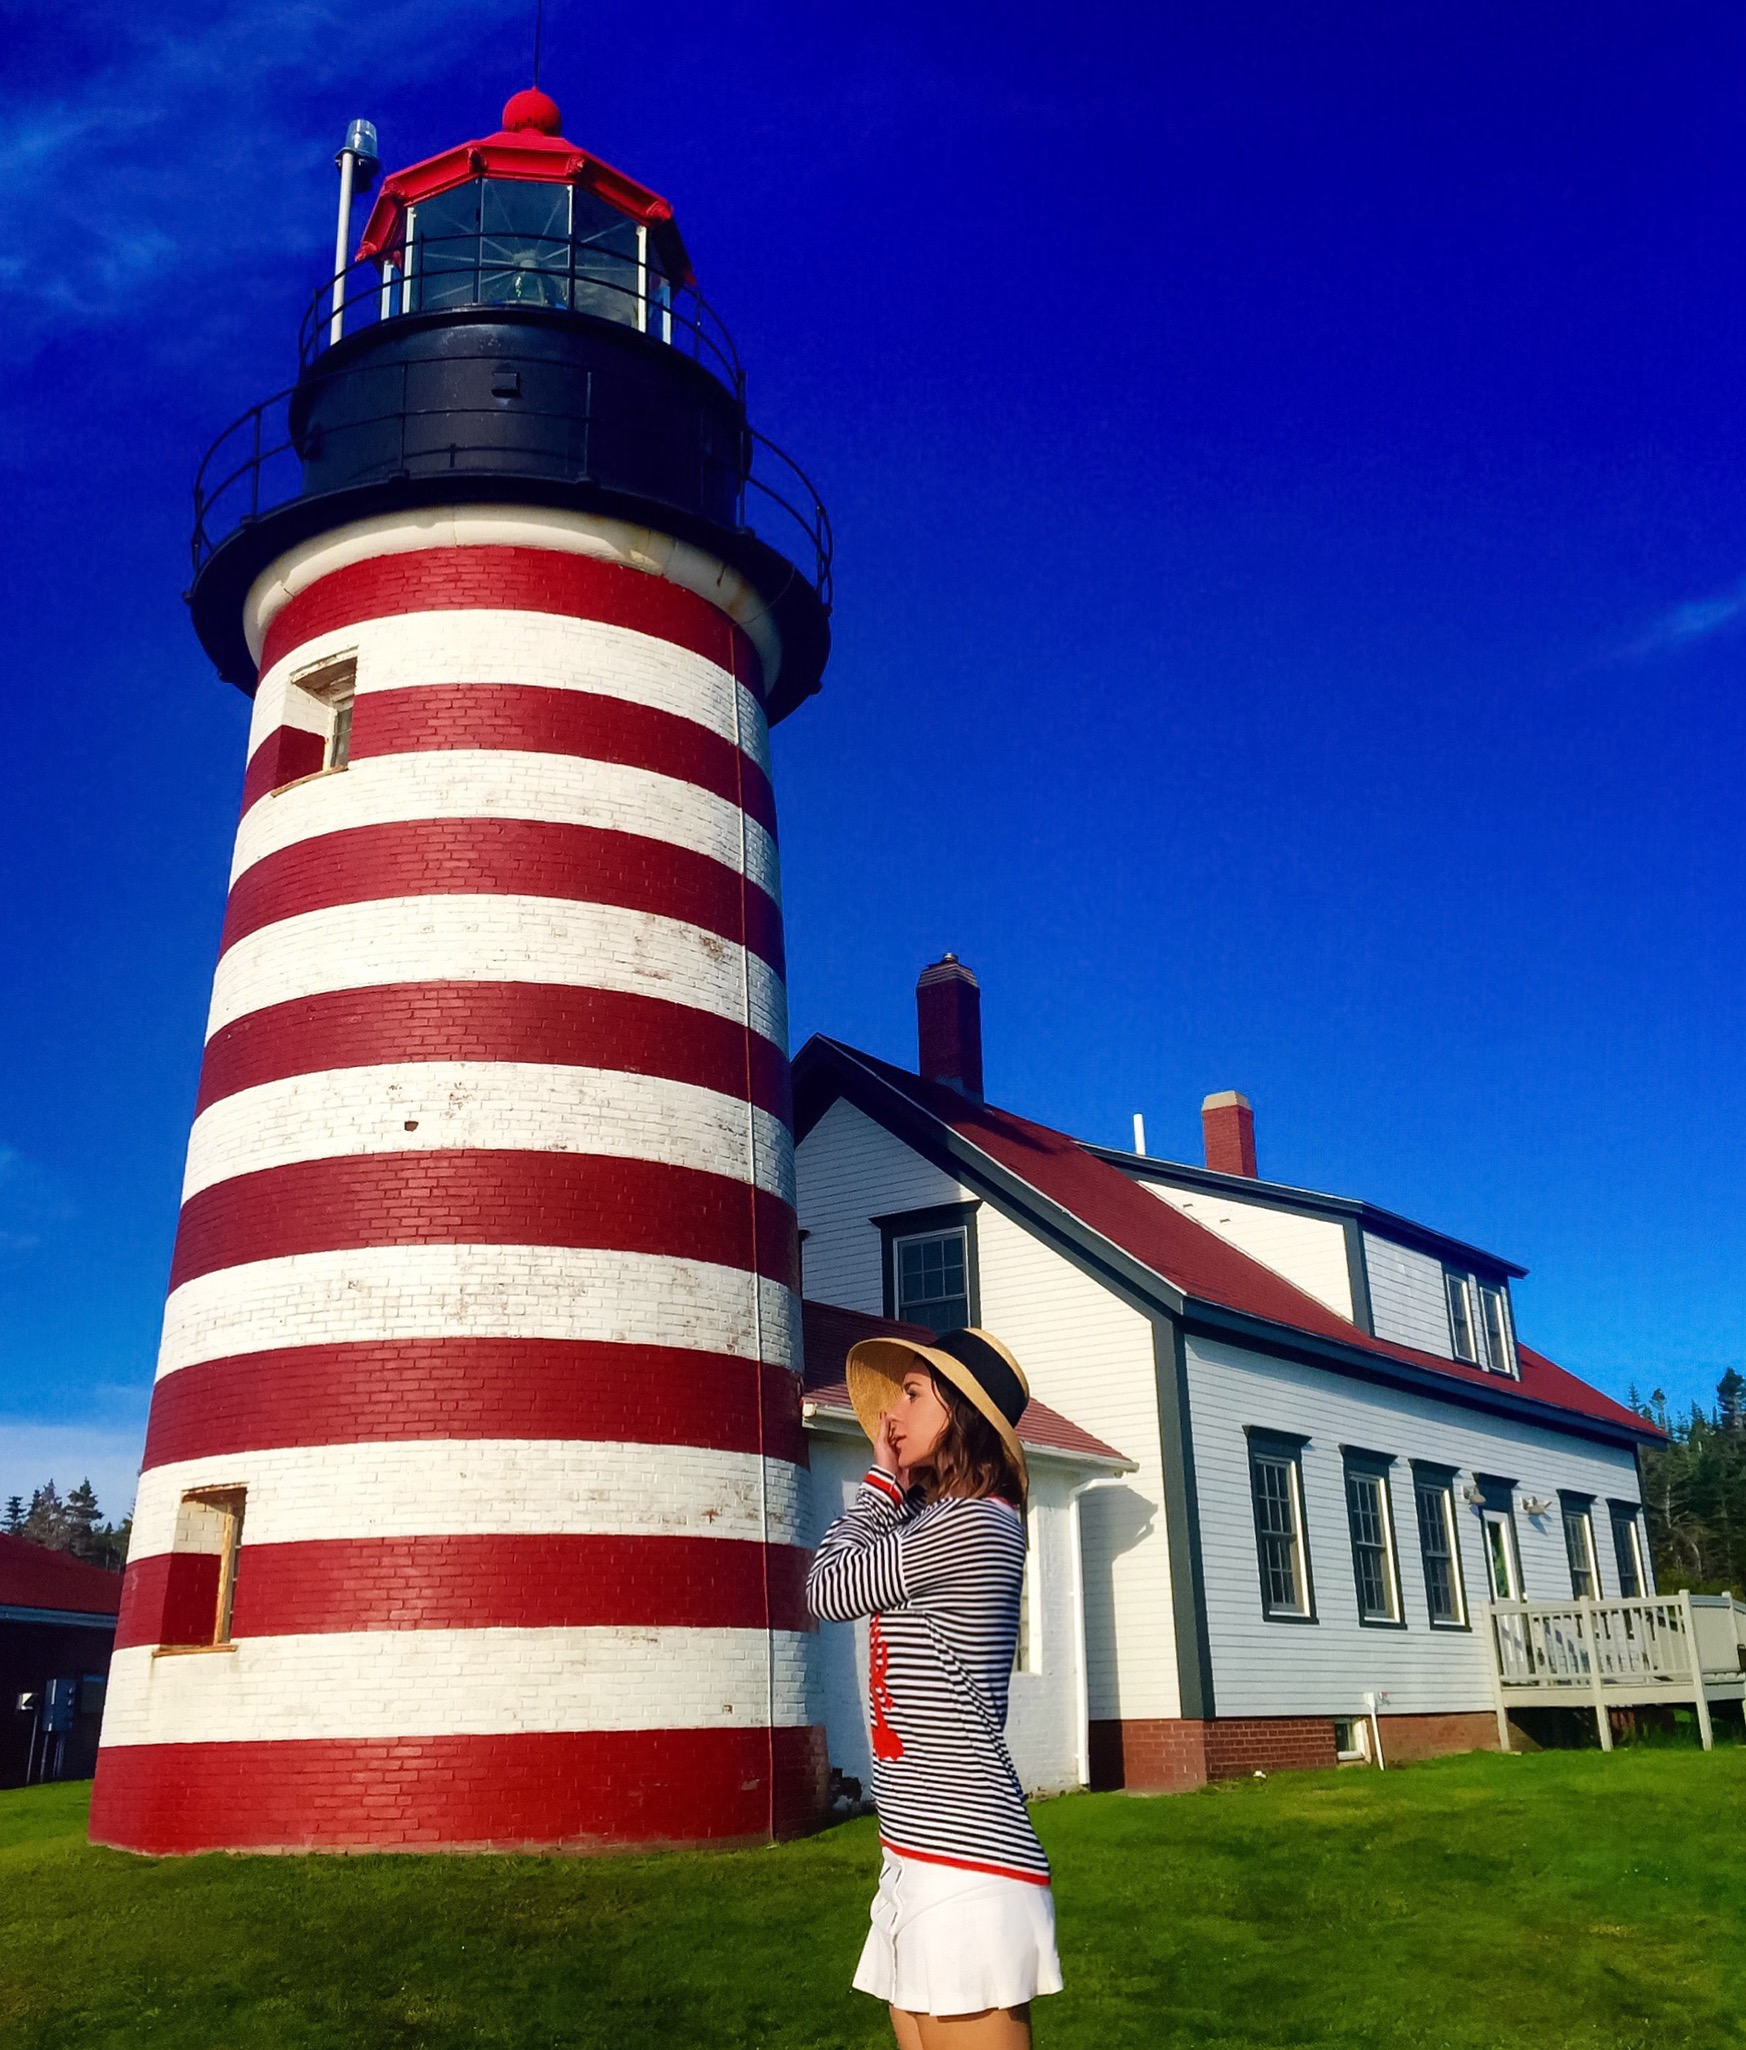 The West Quoddy Head Light , with it's iconic red and white candy stripes, is one of the most frequently depicted American lighthouses and the most famous one in Maine. Built in 1858, it remains an active aid to navigation to this day. Tours are offered daily from Memorial Day through October 15th.